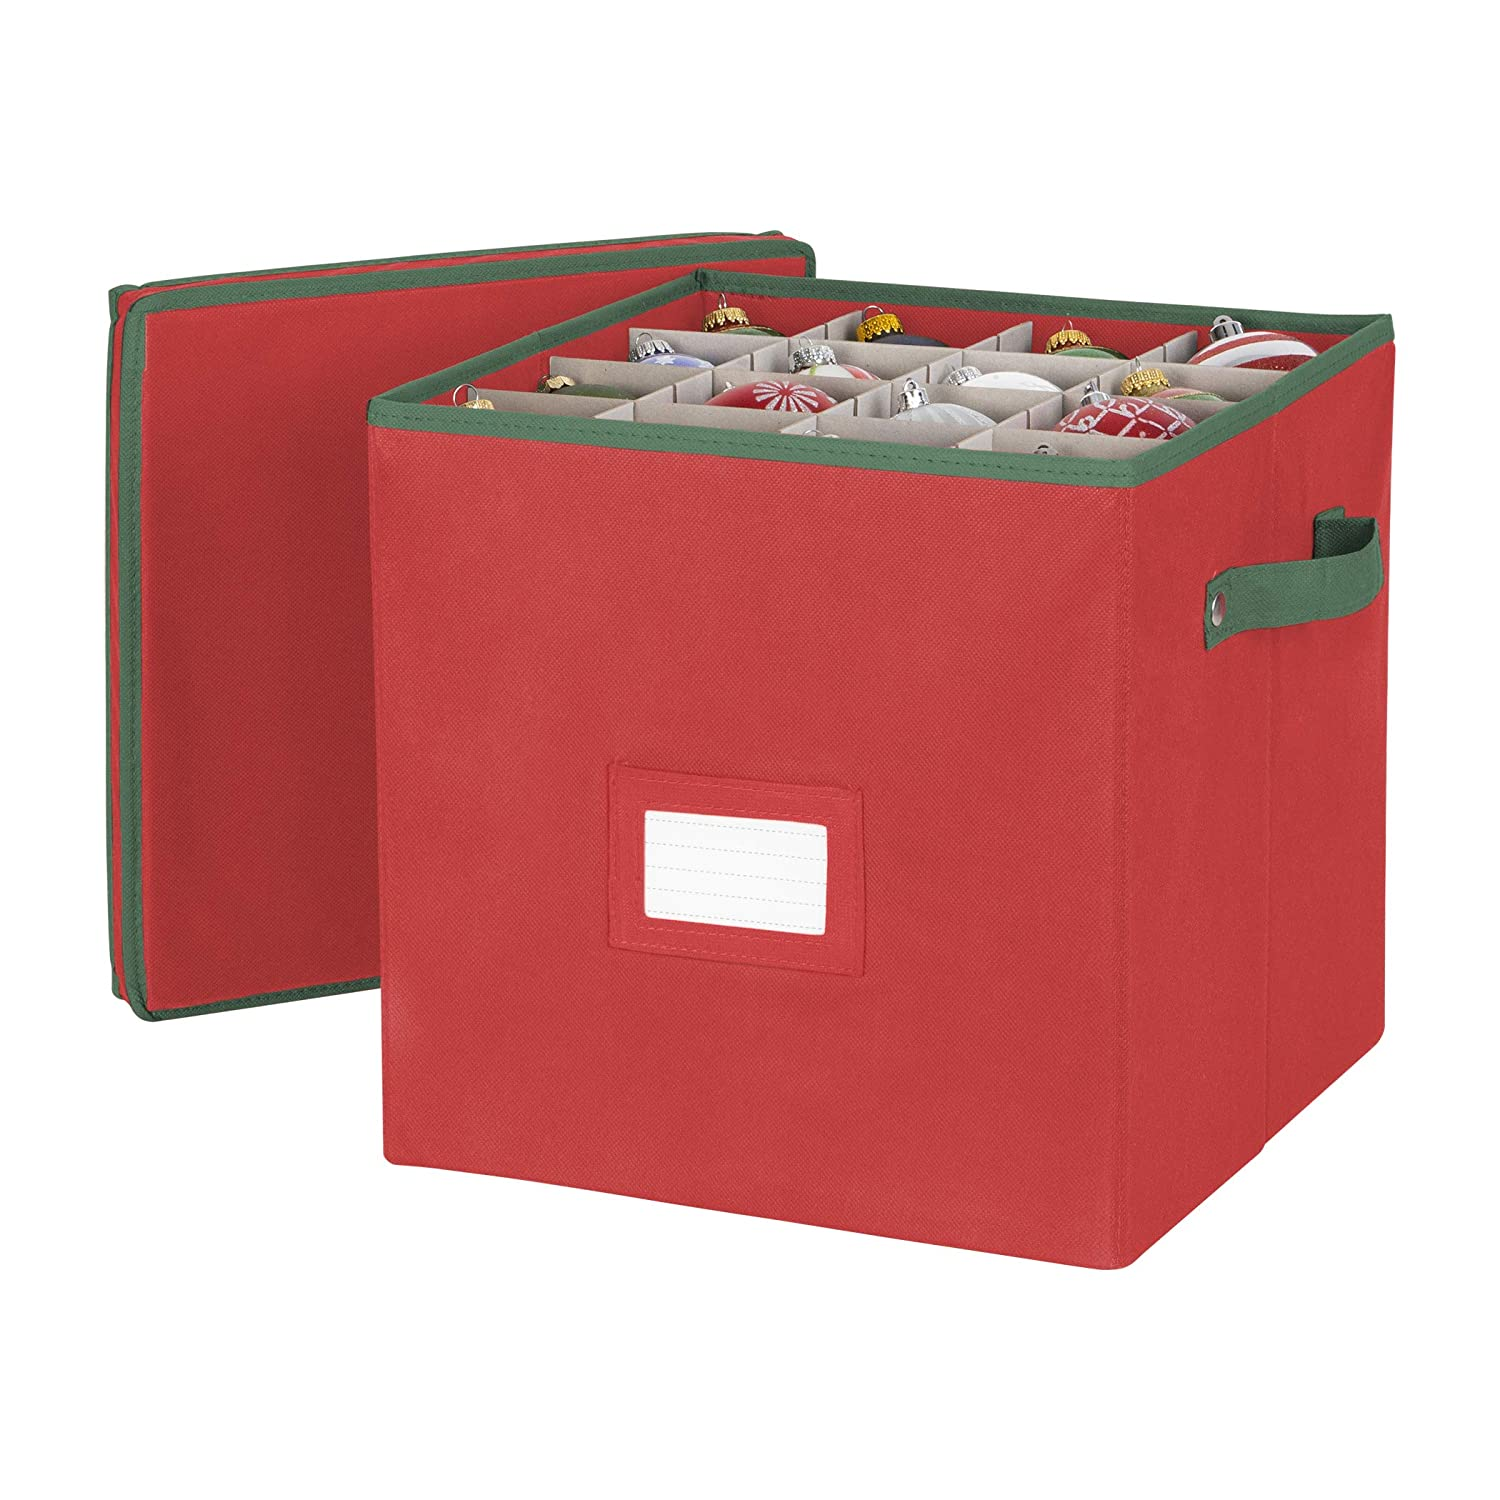 Holiday Ornaments Storage Cube with 64 Individual Compartments - Made with Non-Woven Polypropylene Fabric - Removable Top and Convenient Handle. Hold N Storage AX-AY-ABHI-46954